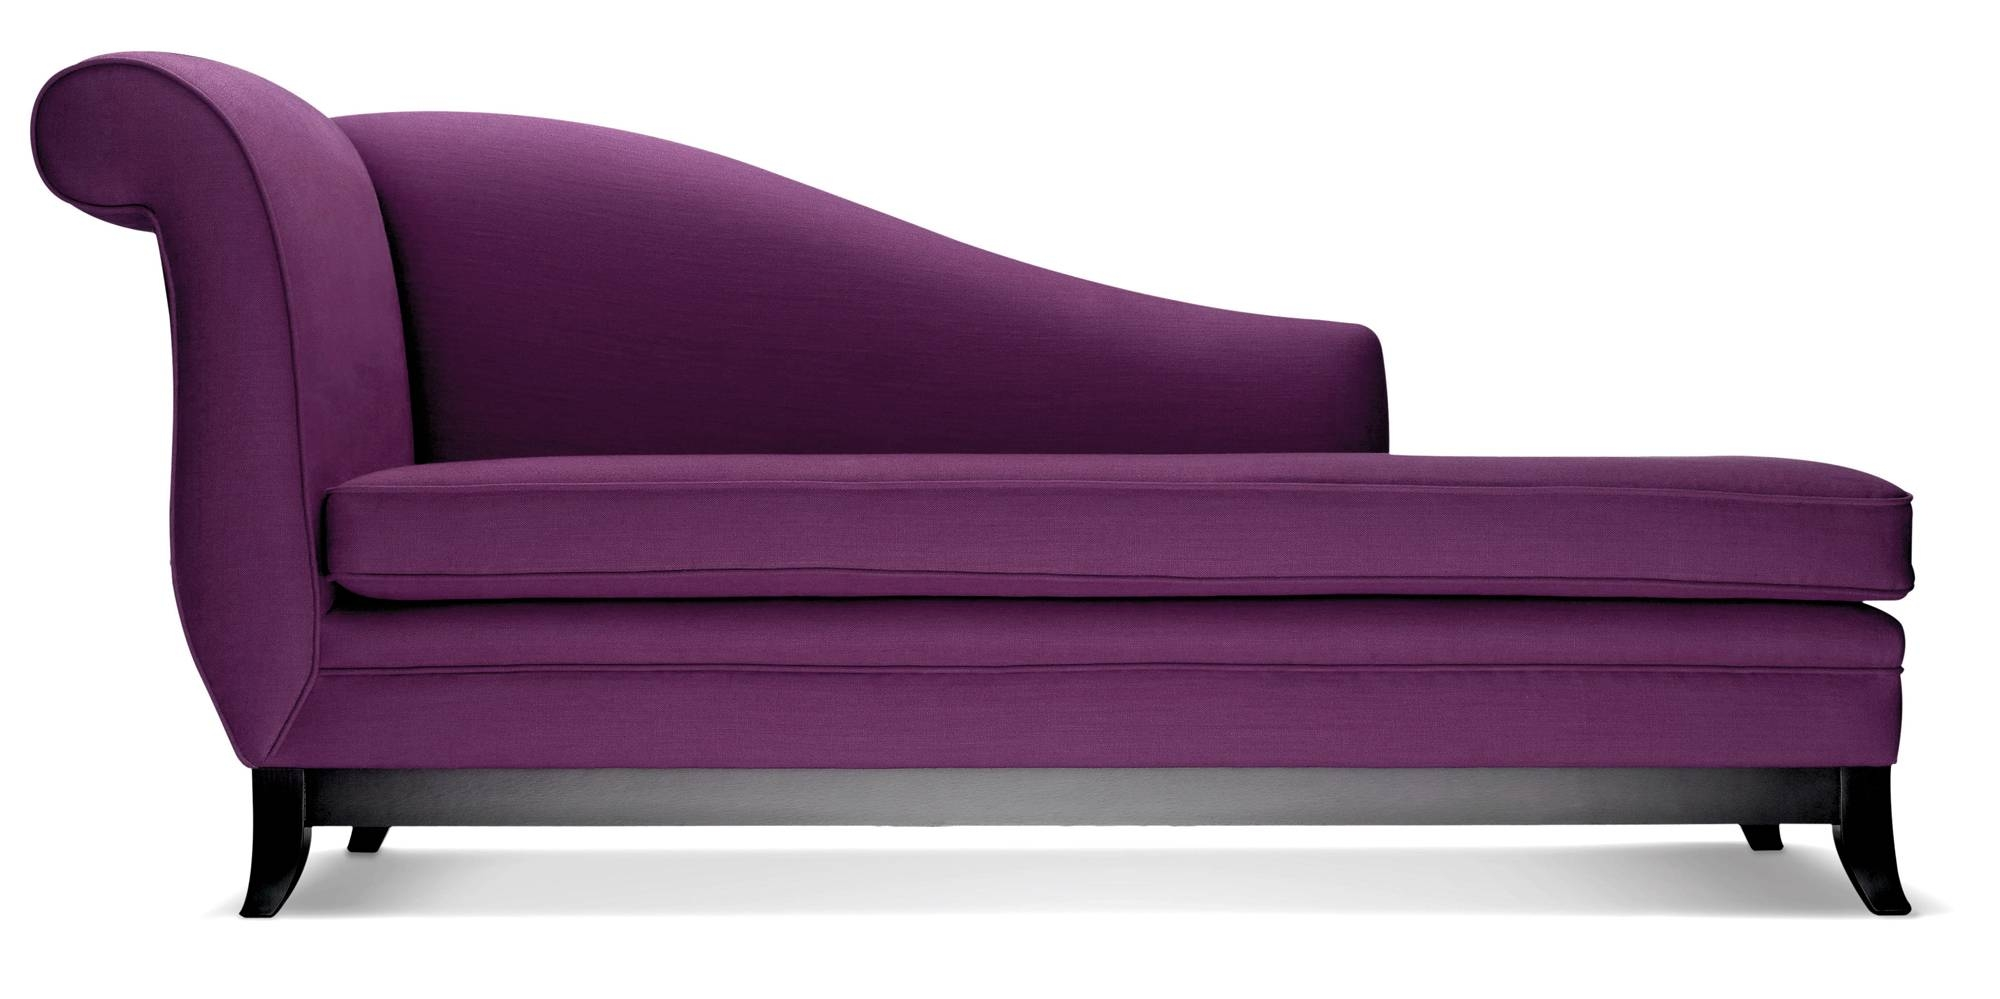 Sofa Beach Style Purple Velvet Tufted Hudson Home Decor Backless With Regard To Backless Chaise Sofa (View 6 of 30)